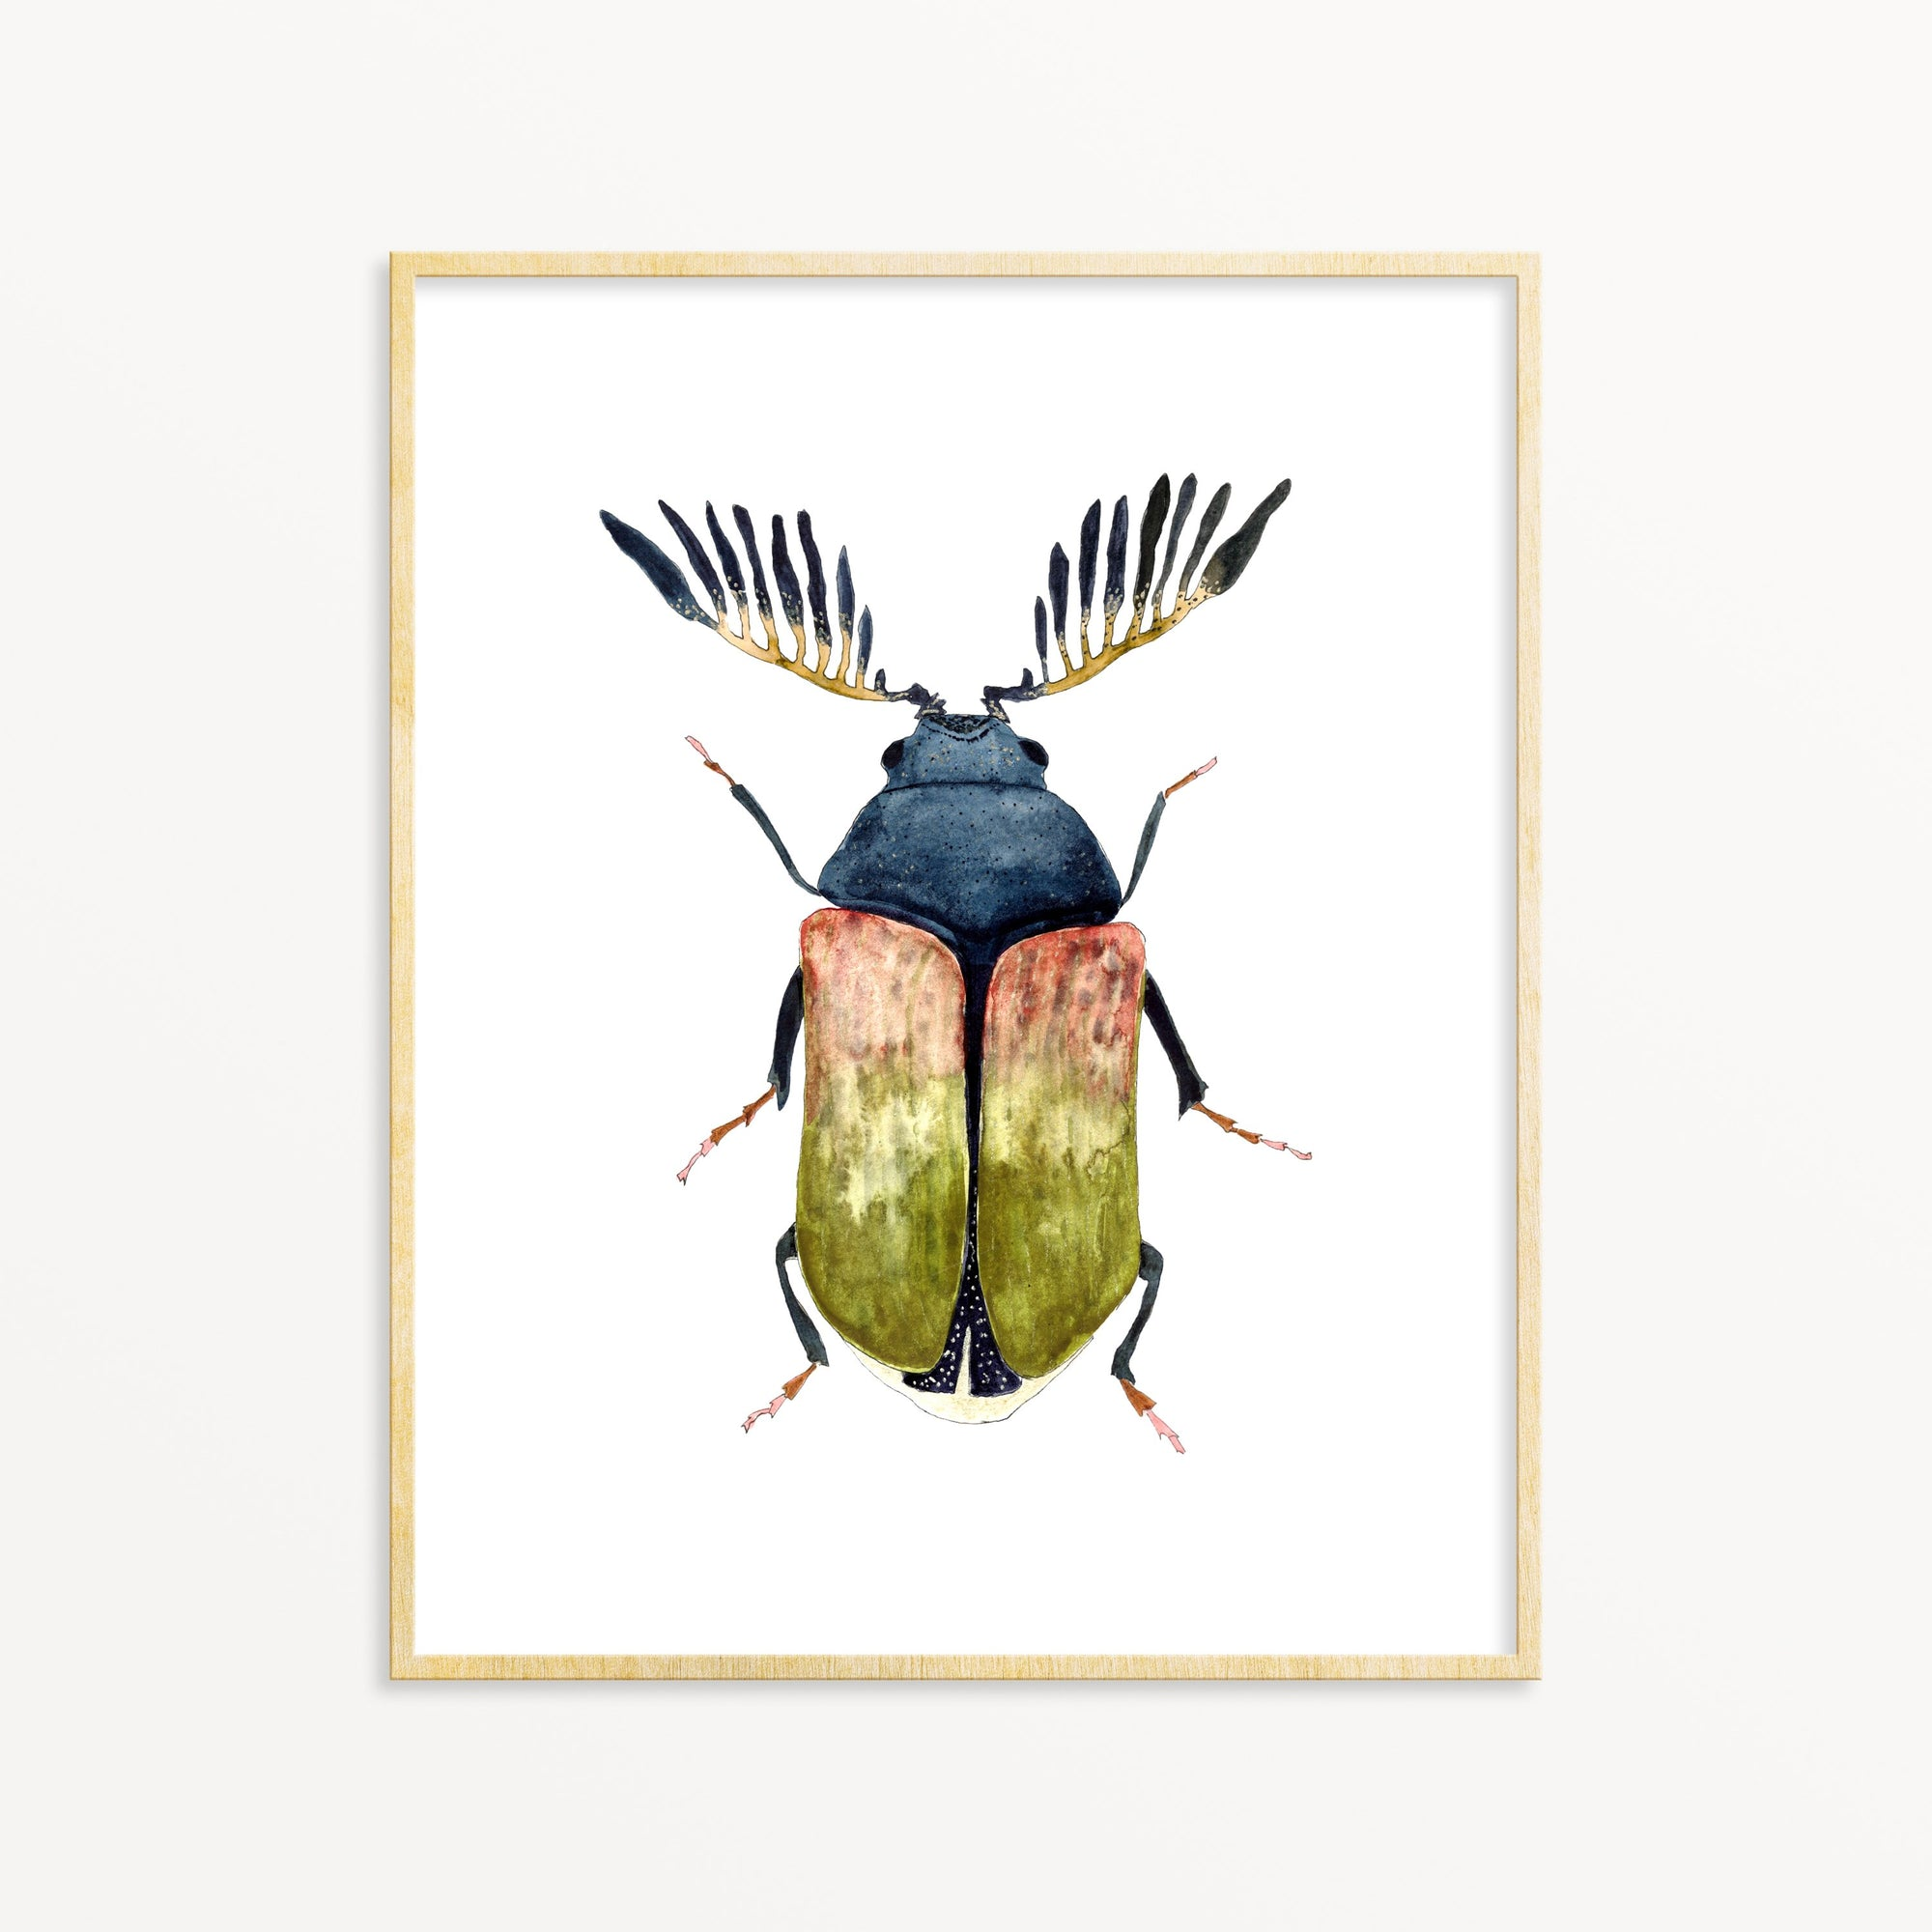 Beetle No. 7